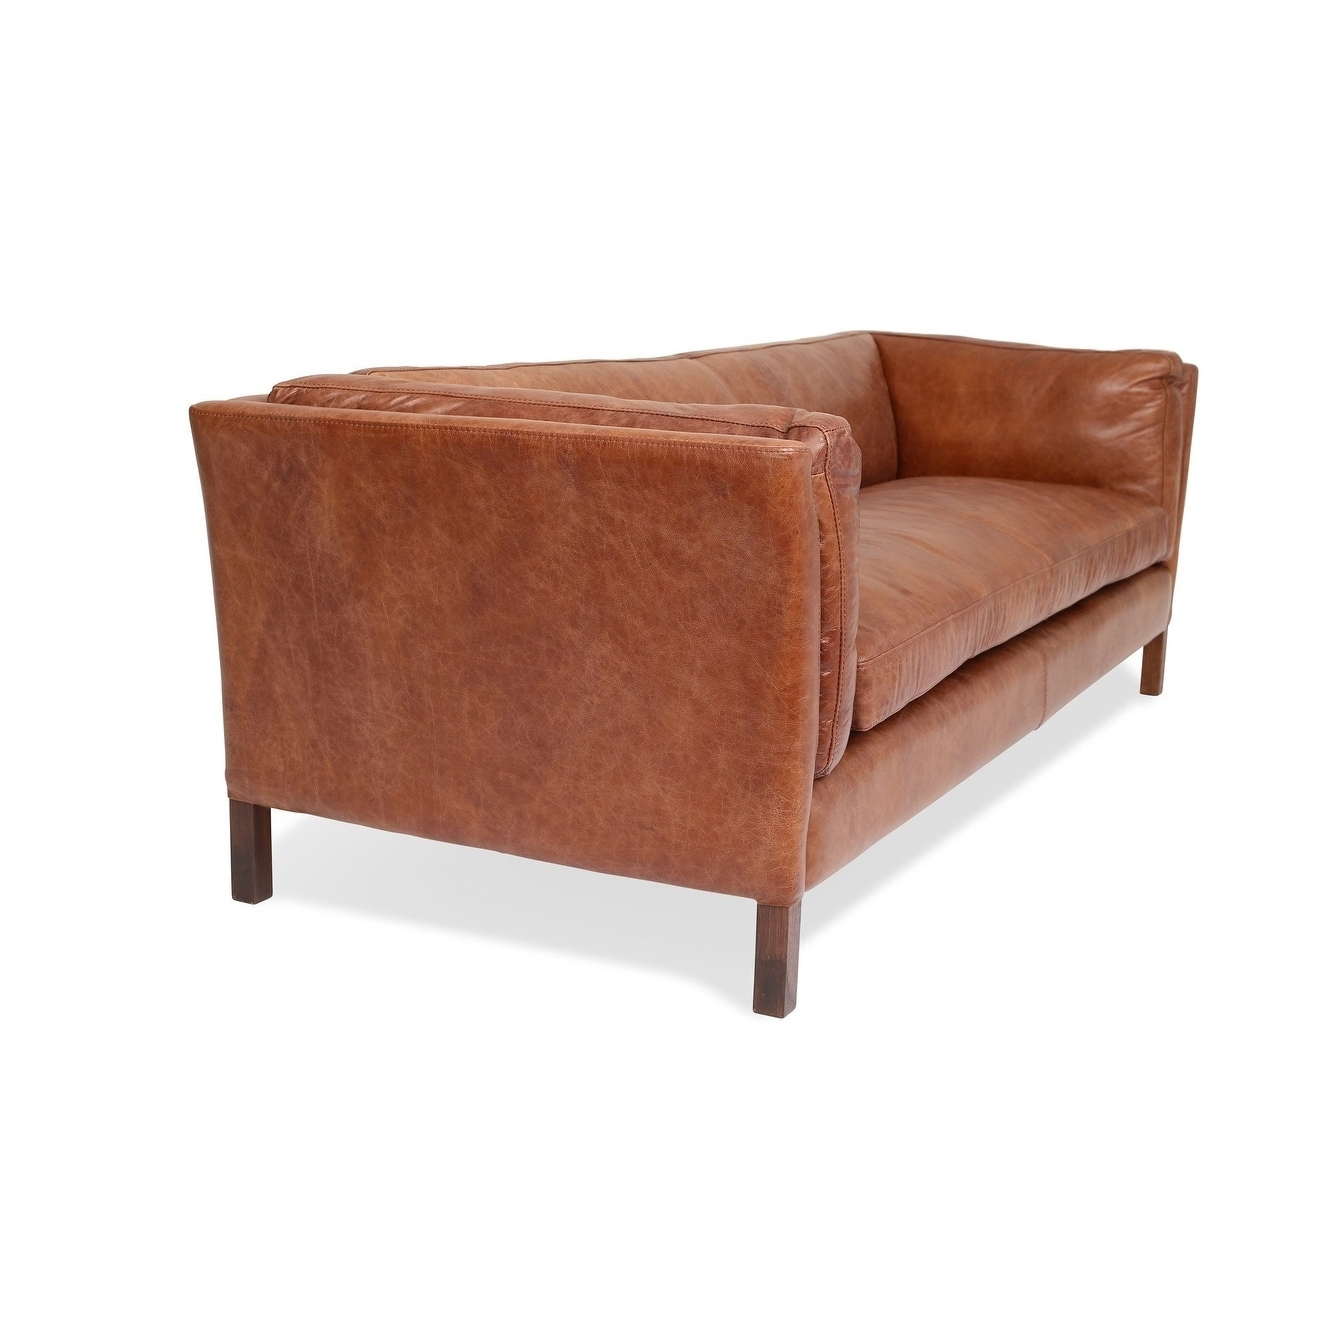 Shop modern leather sofa mid century modern couch top grain brazilian leather cognac brown free shipping today overstock com 21485045